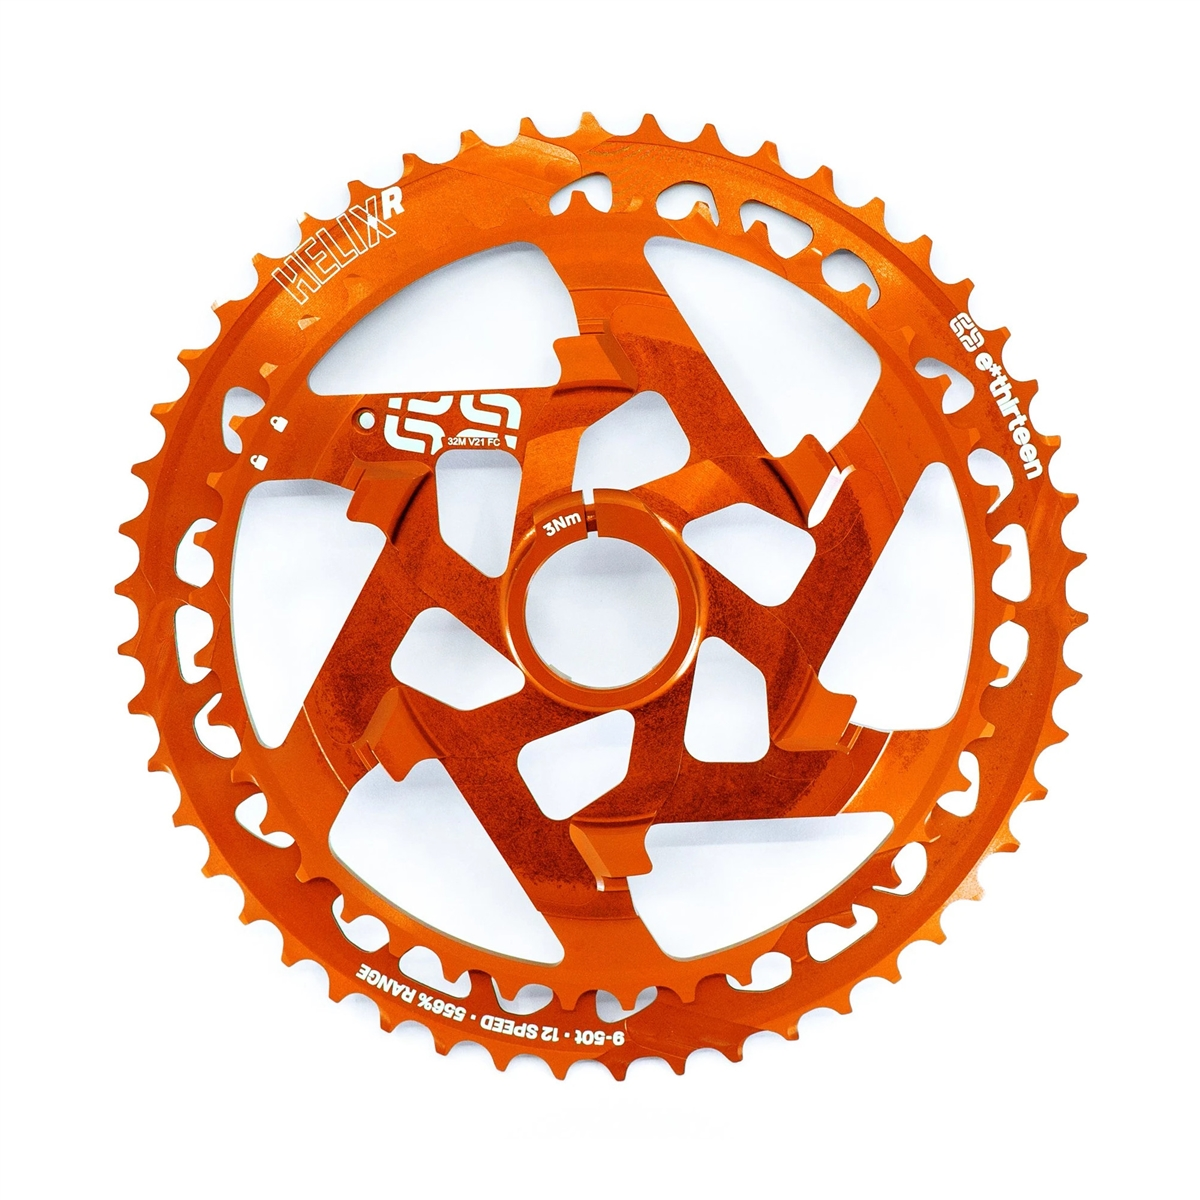 Helix Race 12s Cassette Replacement Cluster 42-50T SRAM XD/XDR Orange